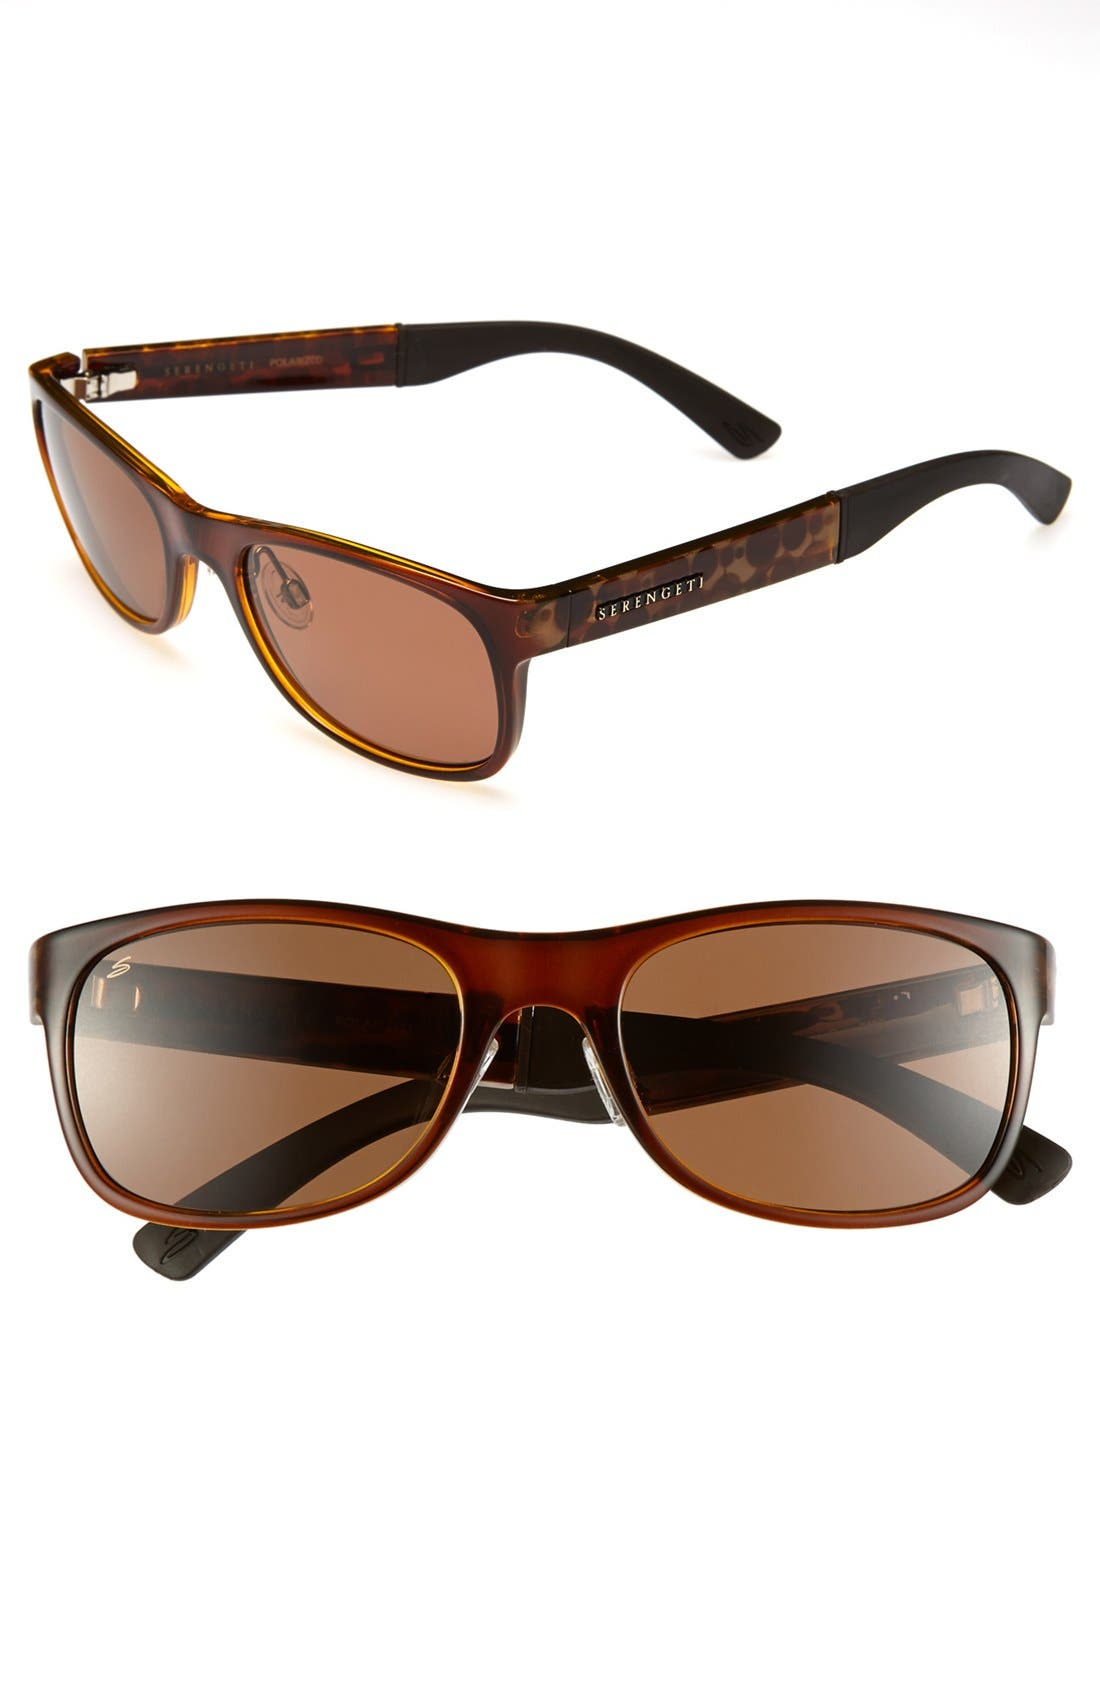 Main Image - Serengeti 'Piero' 56mm Polarized Sunglasses